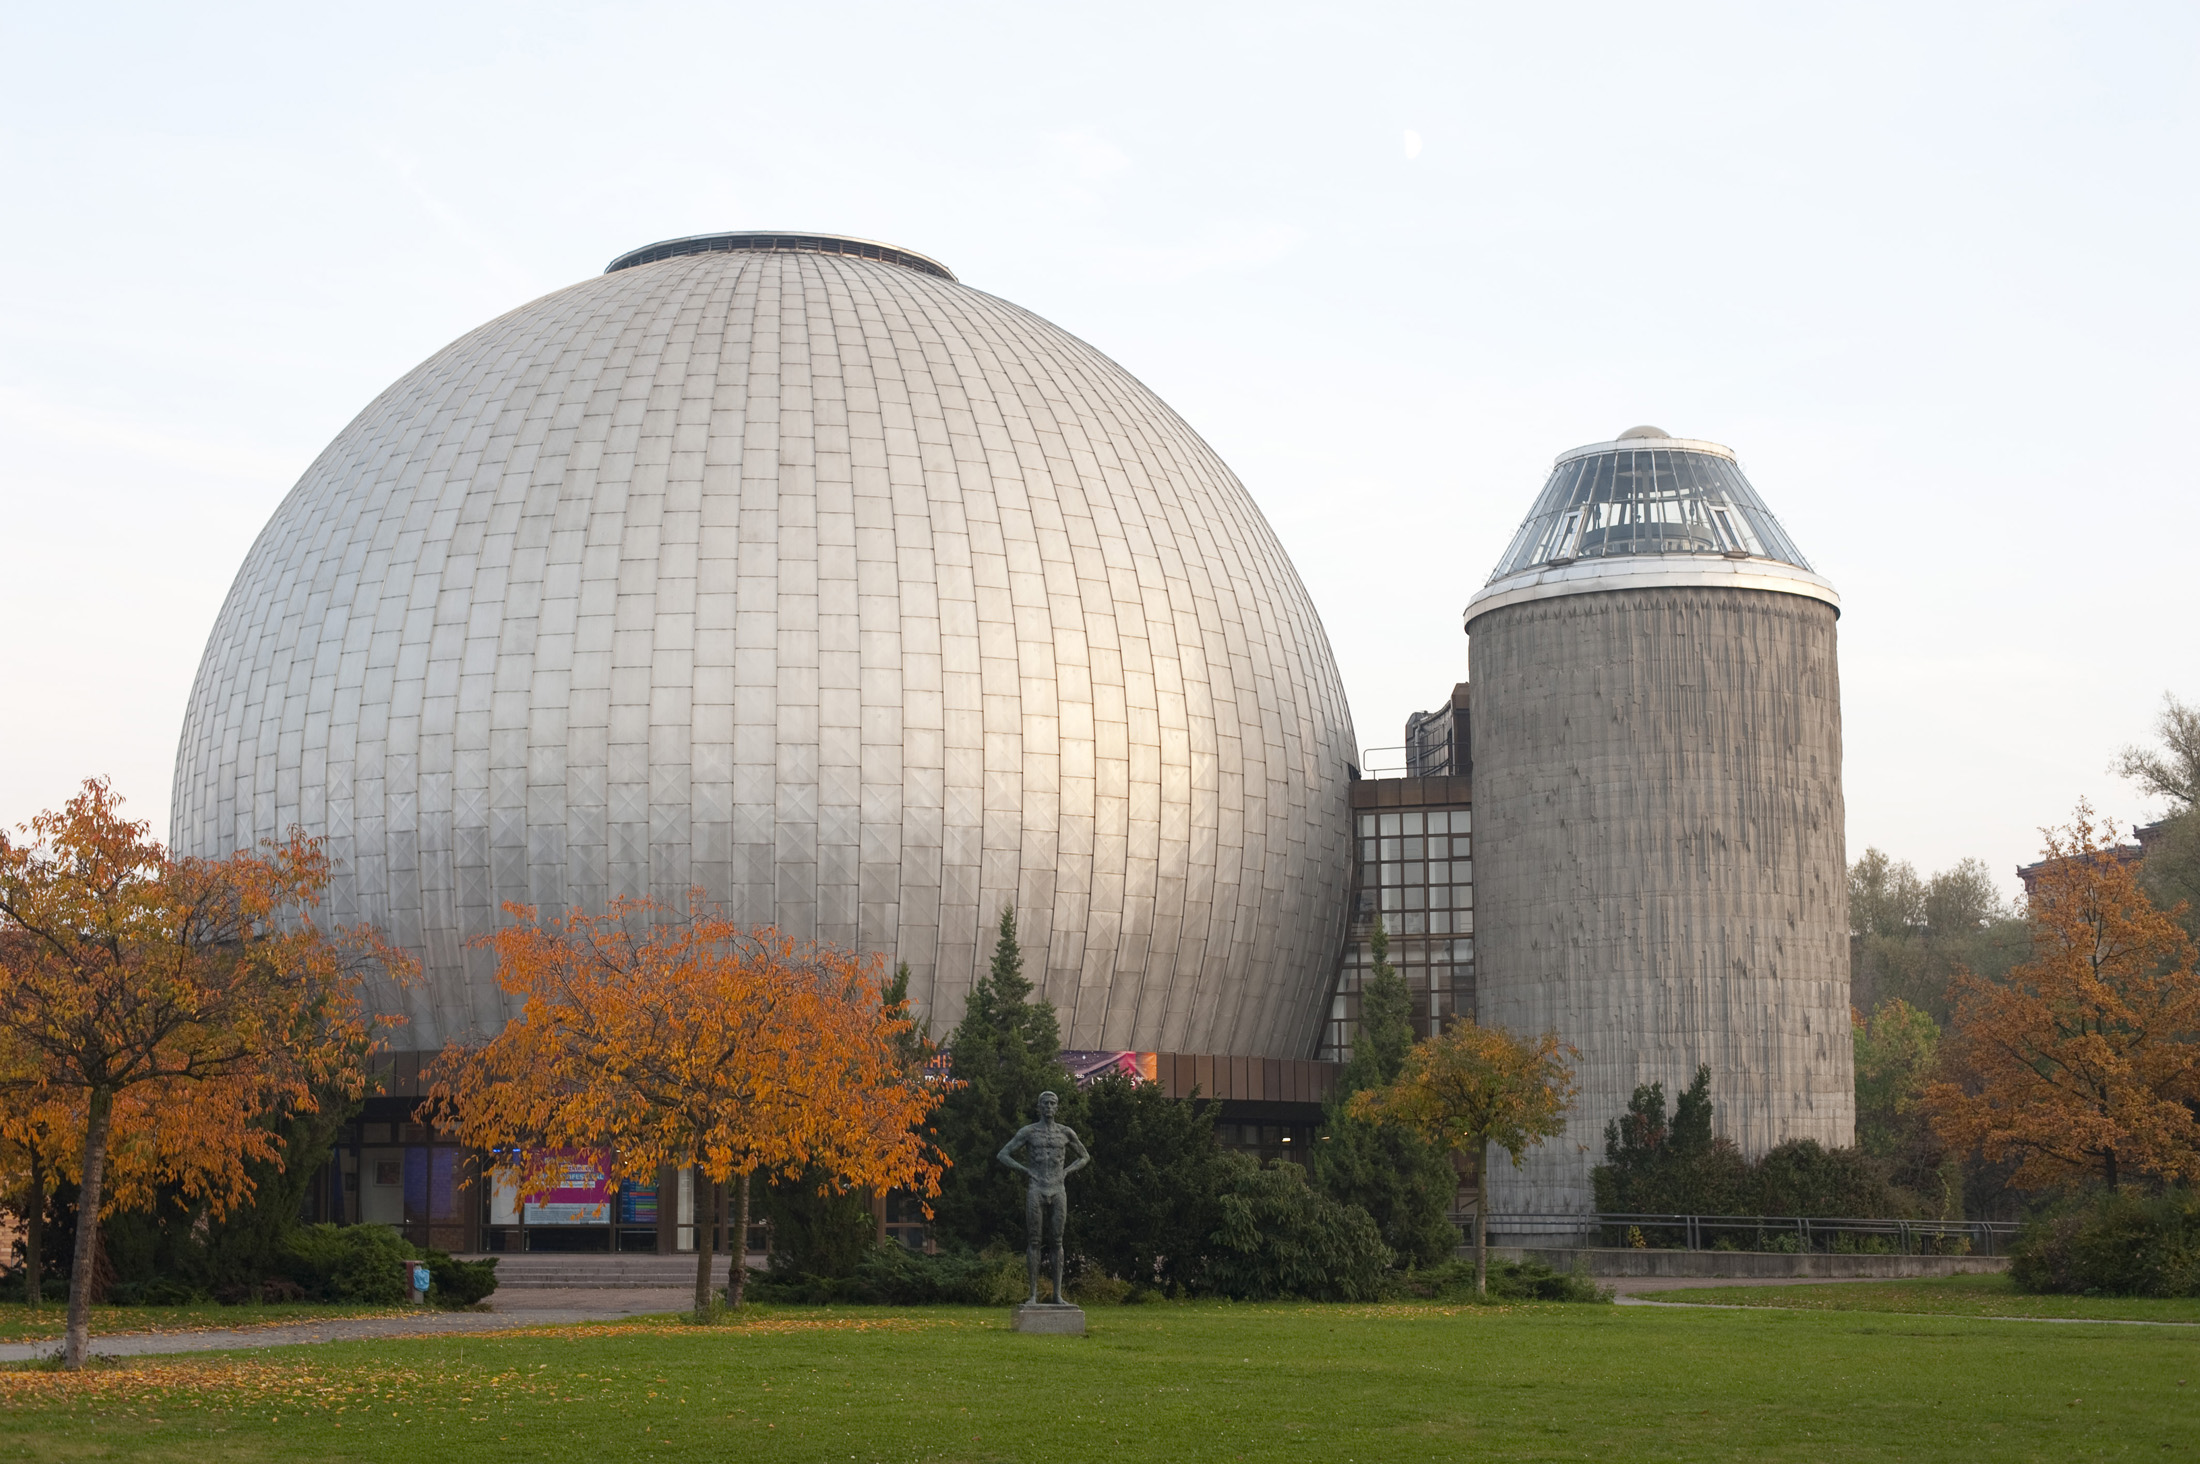 exterior of the berlin zeiss planetarium